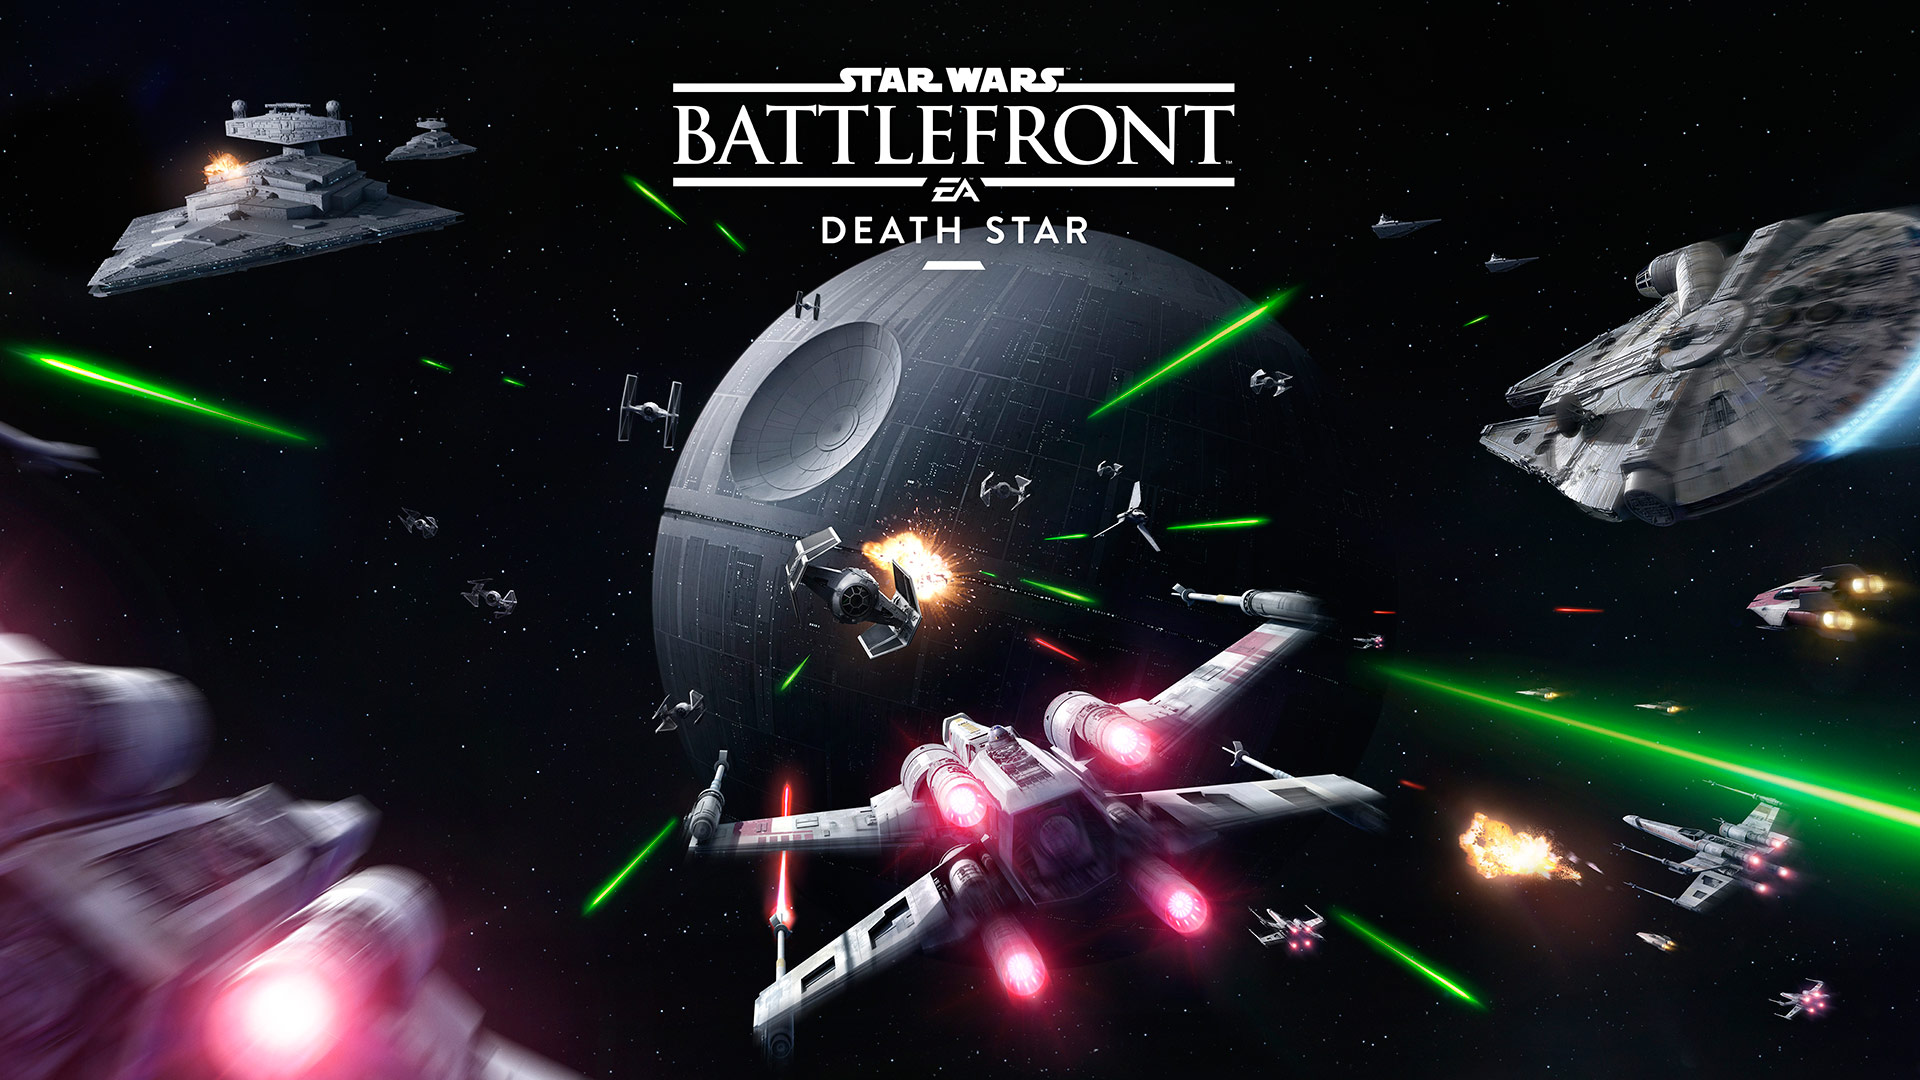 10 Things to Know About the Star Wars Battlefront Death Star DLC